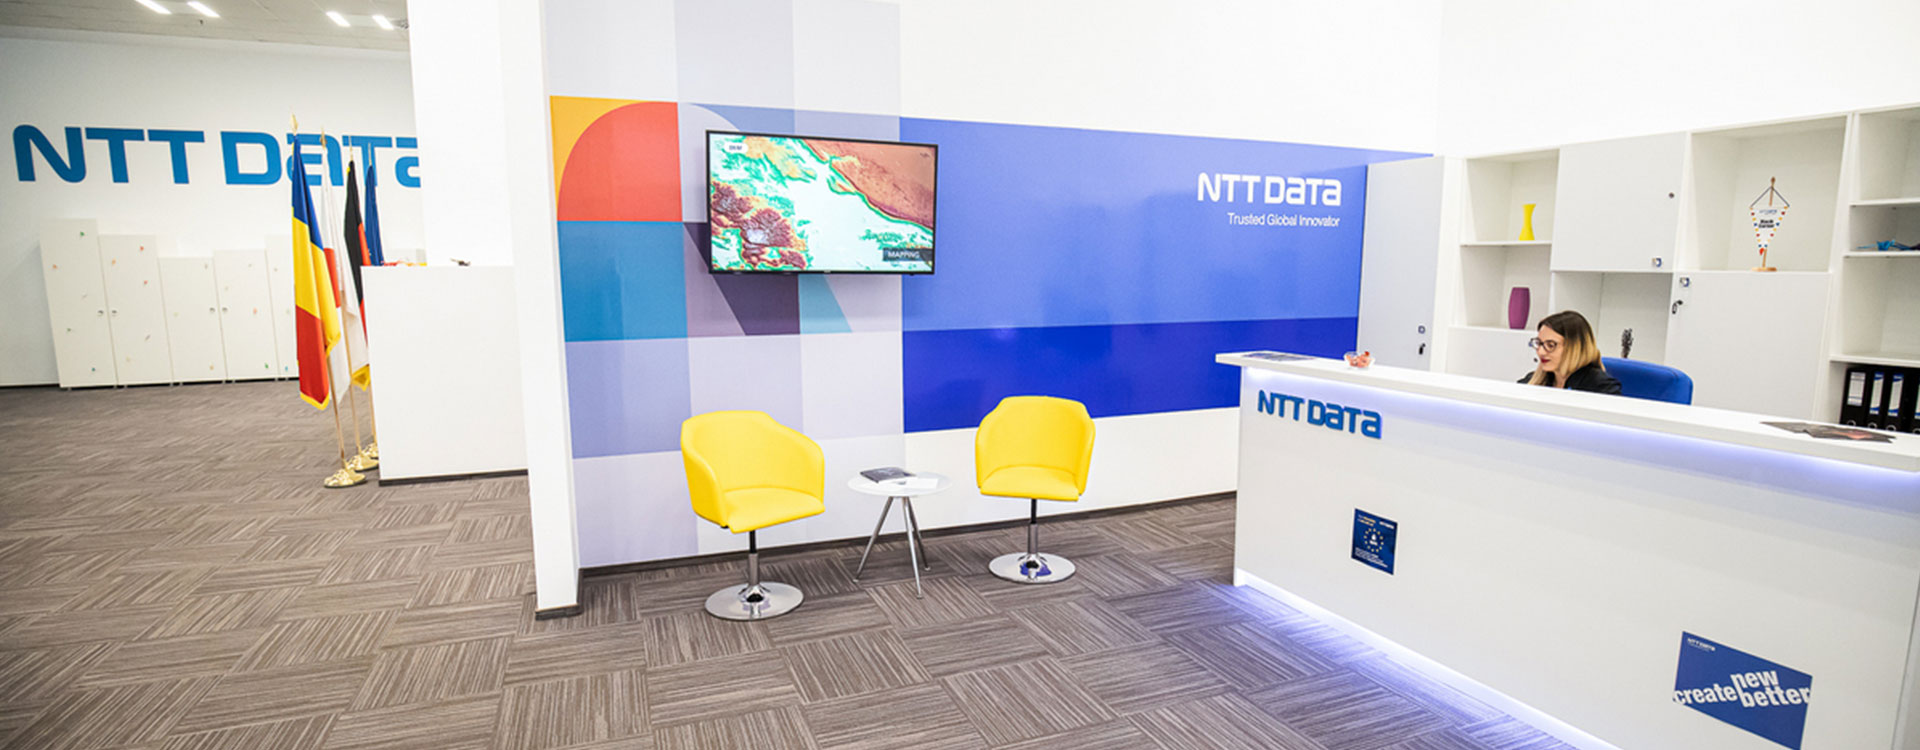 NTT DATA Iasi Office